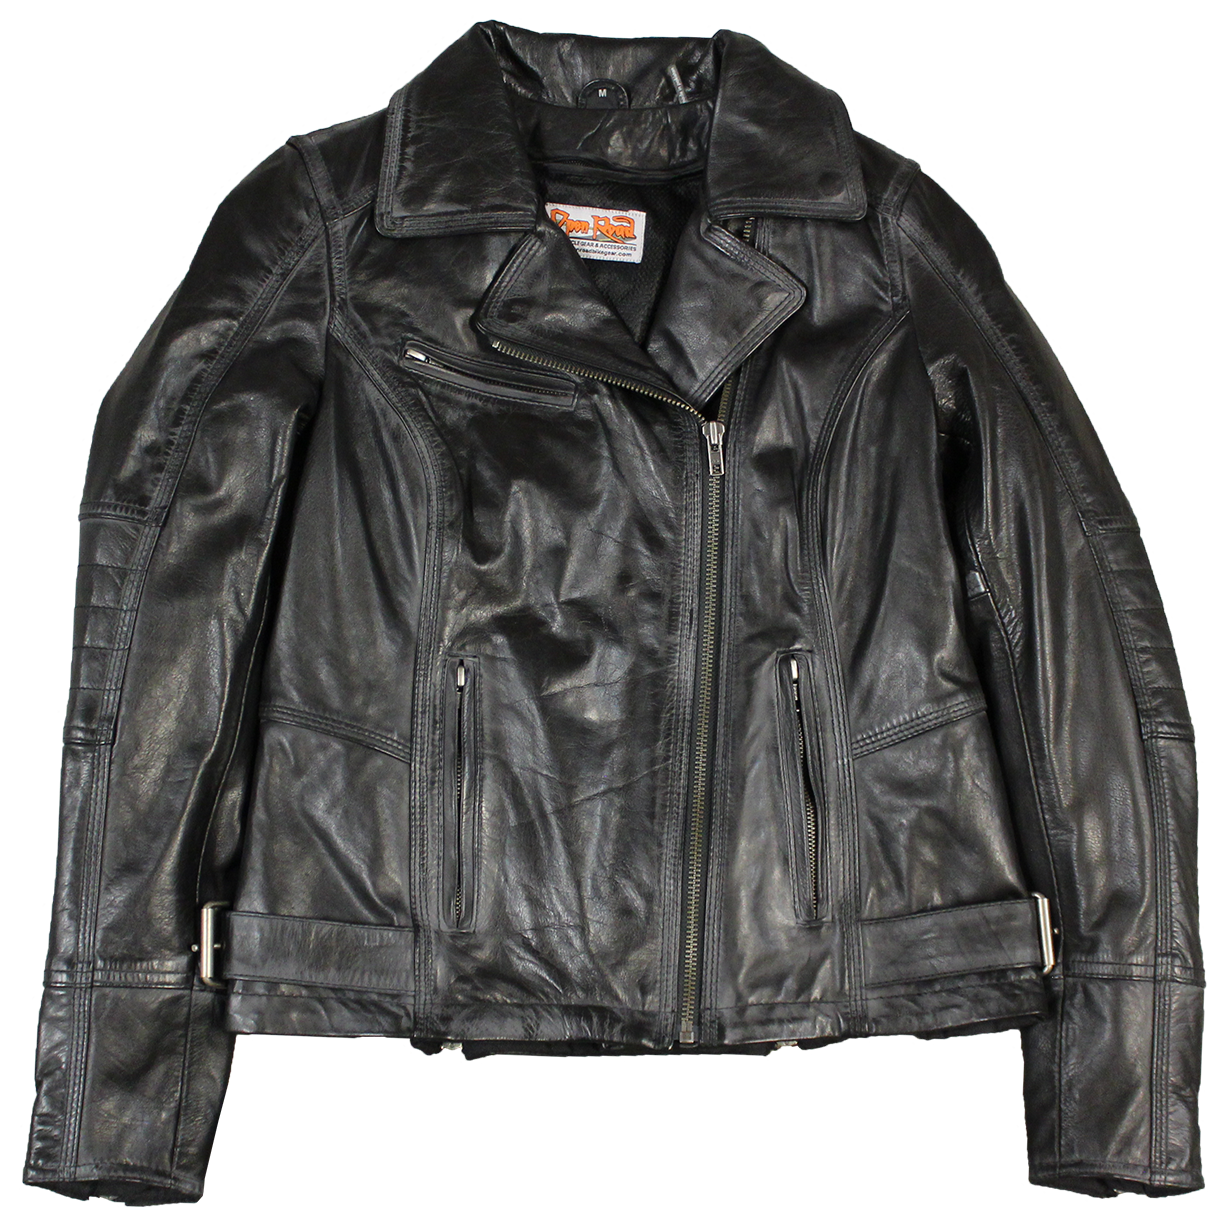 Gem reccomend Motorcycle jacket liners with thumb holes